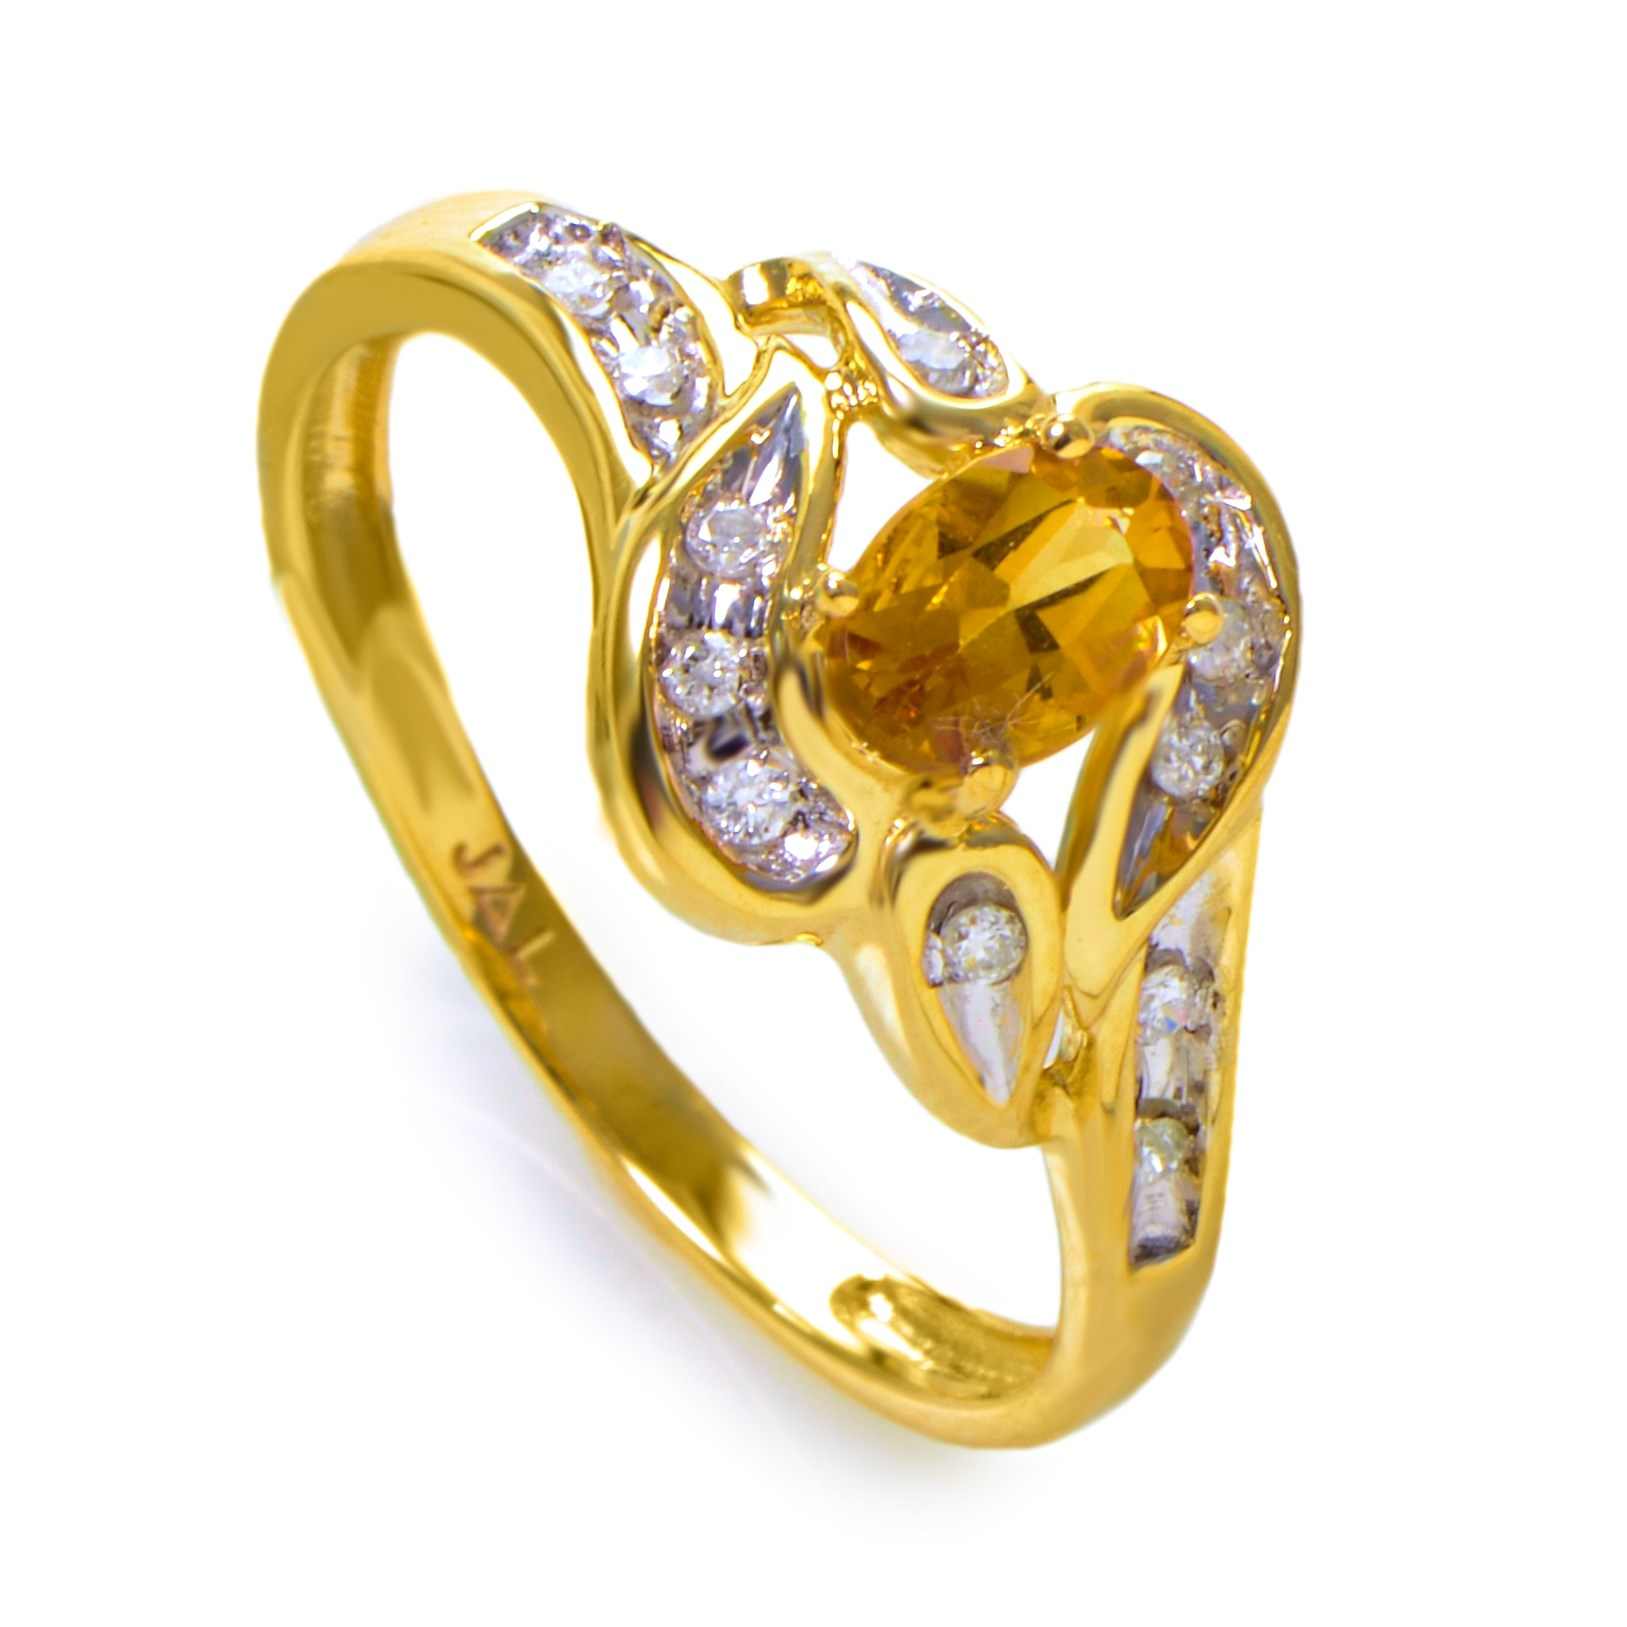 14K Yellow Gold Citrine Stone & Diamond Swirl Ring RM1544-8